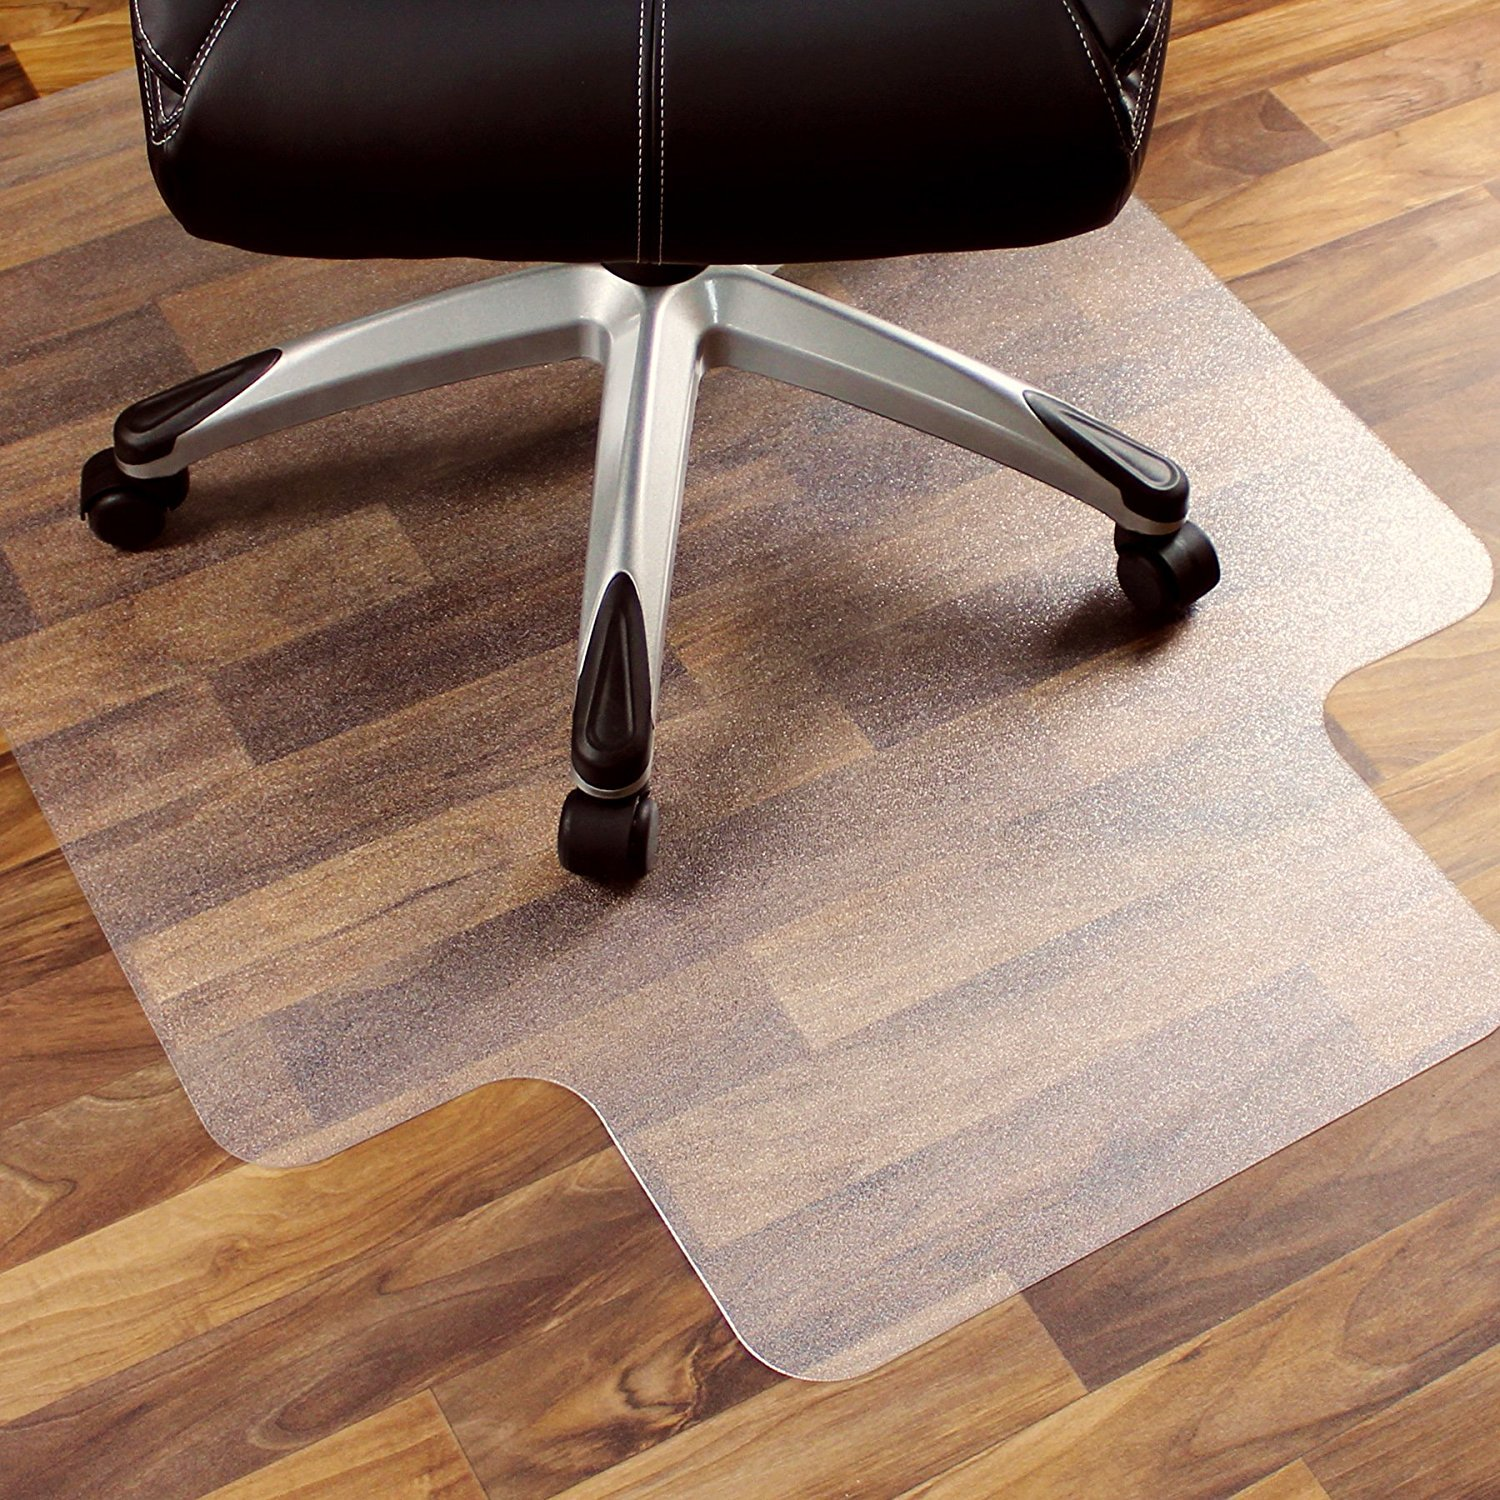 VALLEY TREE 36''×48'' Floor Mats for Office, Chair Mat for Hardwood Floor, Desk Mat, Office Chair Floor Mat for Hardwood Floor, Chair Floor Protector, 0.059 Inch Clear Thickness for Computer Desk